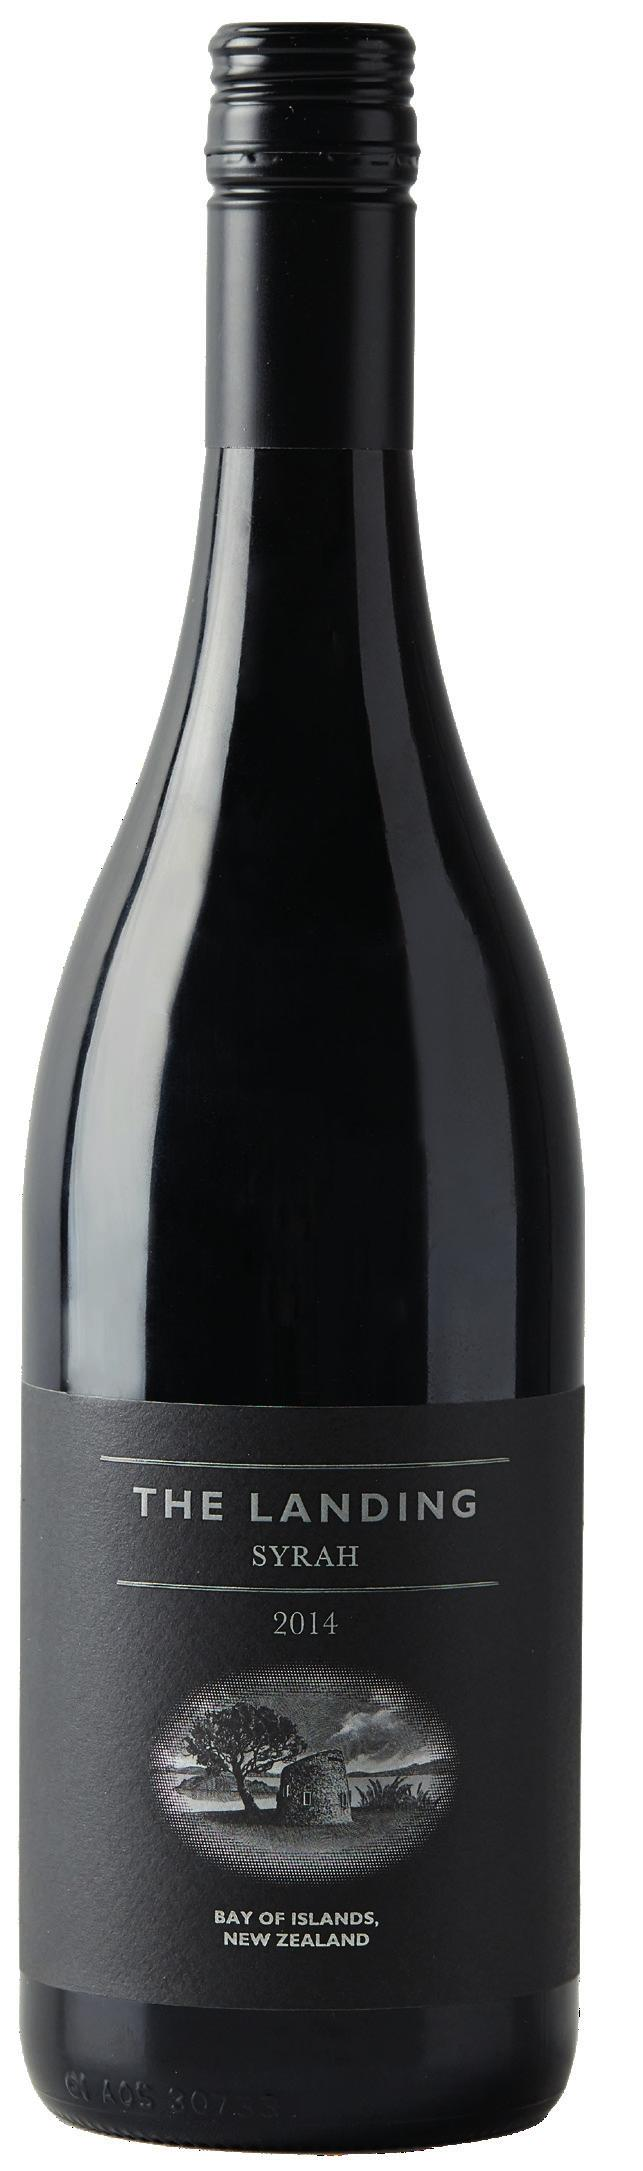 THE LANDING SYRAH 2014 Grown on the coastal slopes overlooking the Bay of Islands, the 2014 Syrah is an expression of a deep and elegantly concentrated core of black-berried fruit, spice and